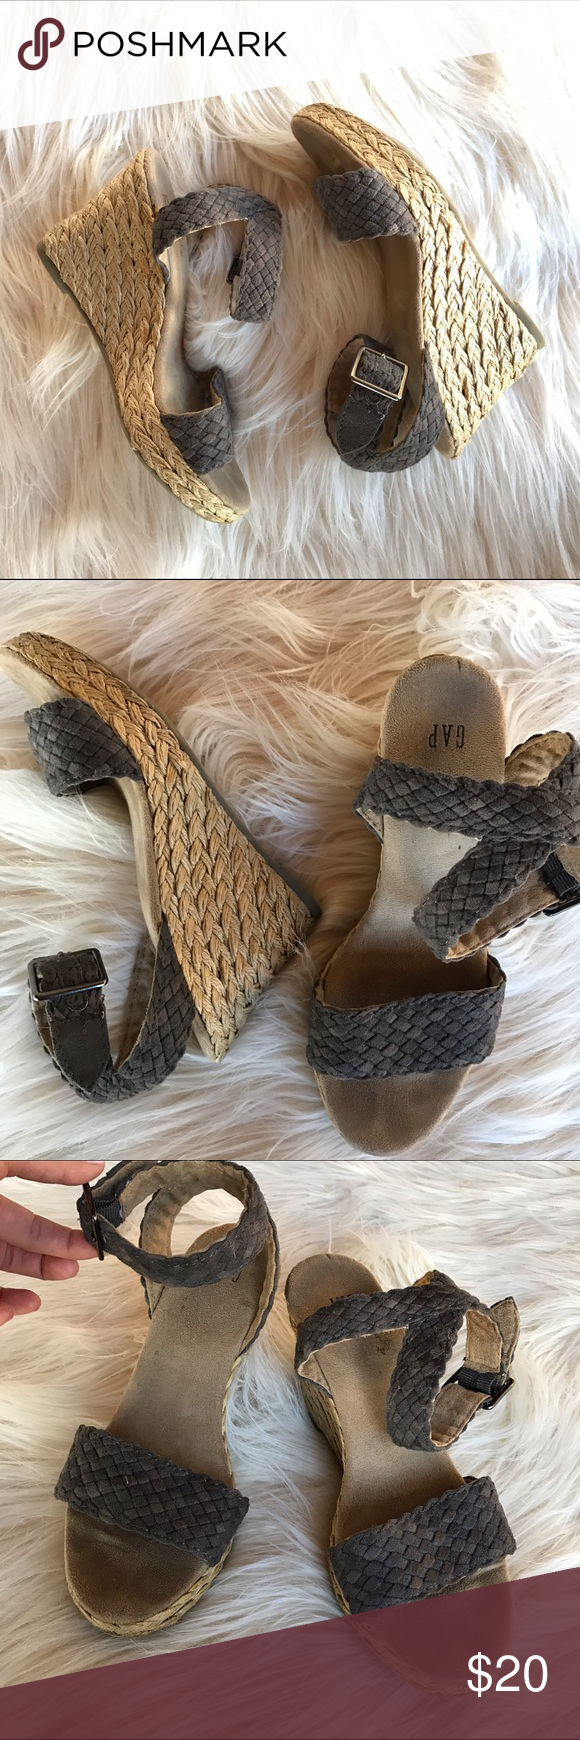 • Braided Wedges • Braided jute wedges with strap ankle closure. Approx 3 inch heel with platform toe. Comfortable & cute with skinny jeans or shorts. EUC - no scuffs on toe or heel. Size 7. Brand: Gap GAP Shoes Sandals